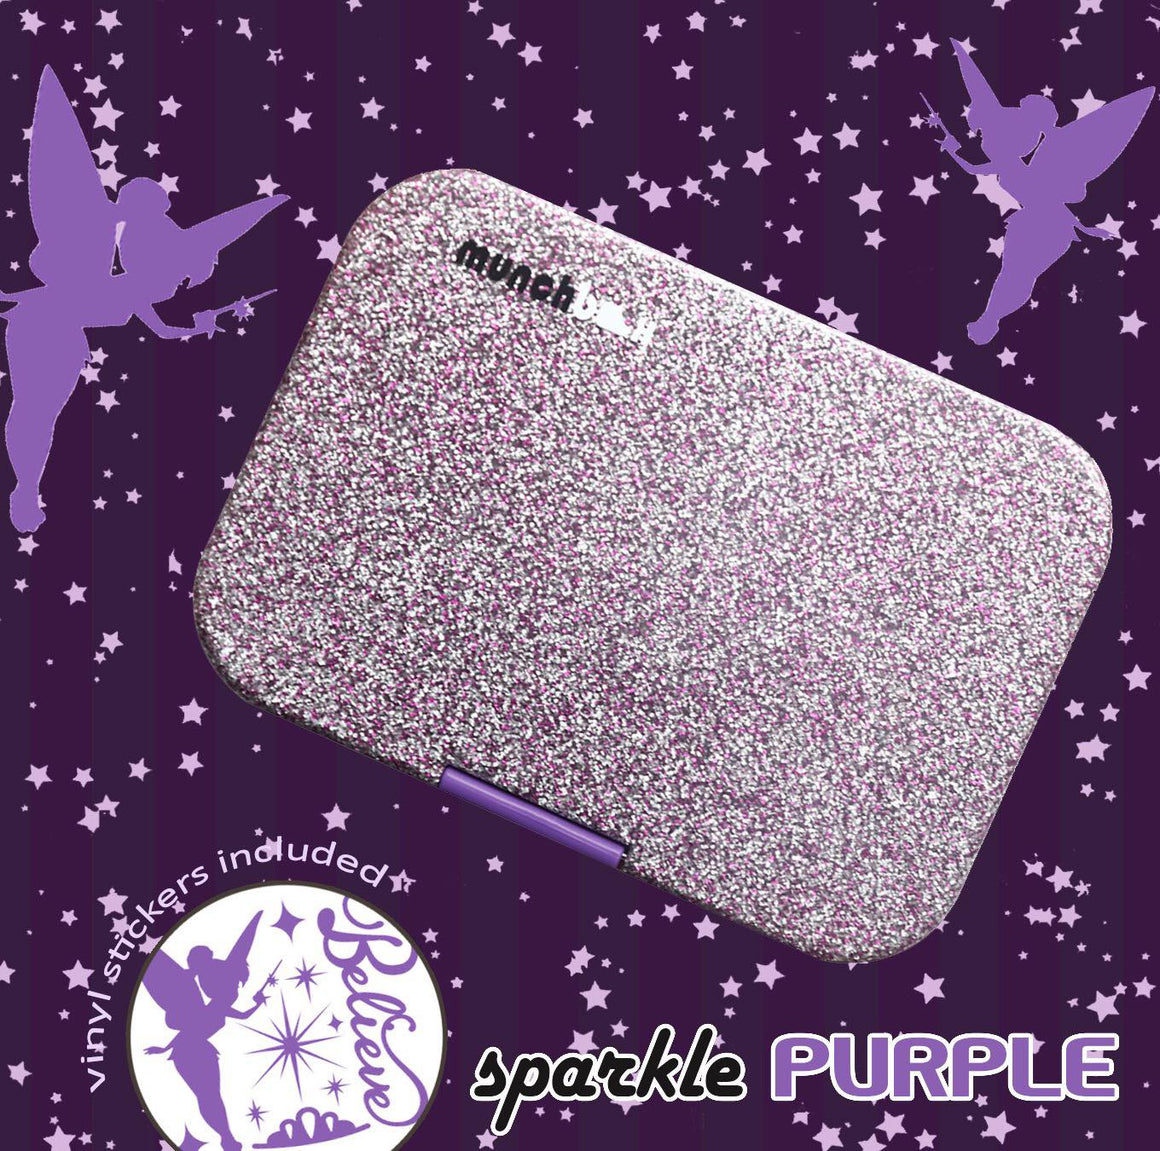 Sparkle Purple - YYZ Distribution